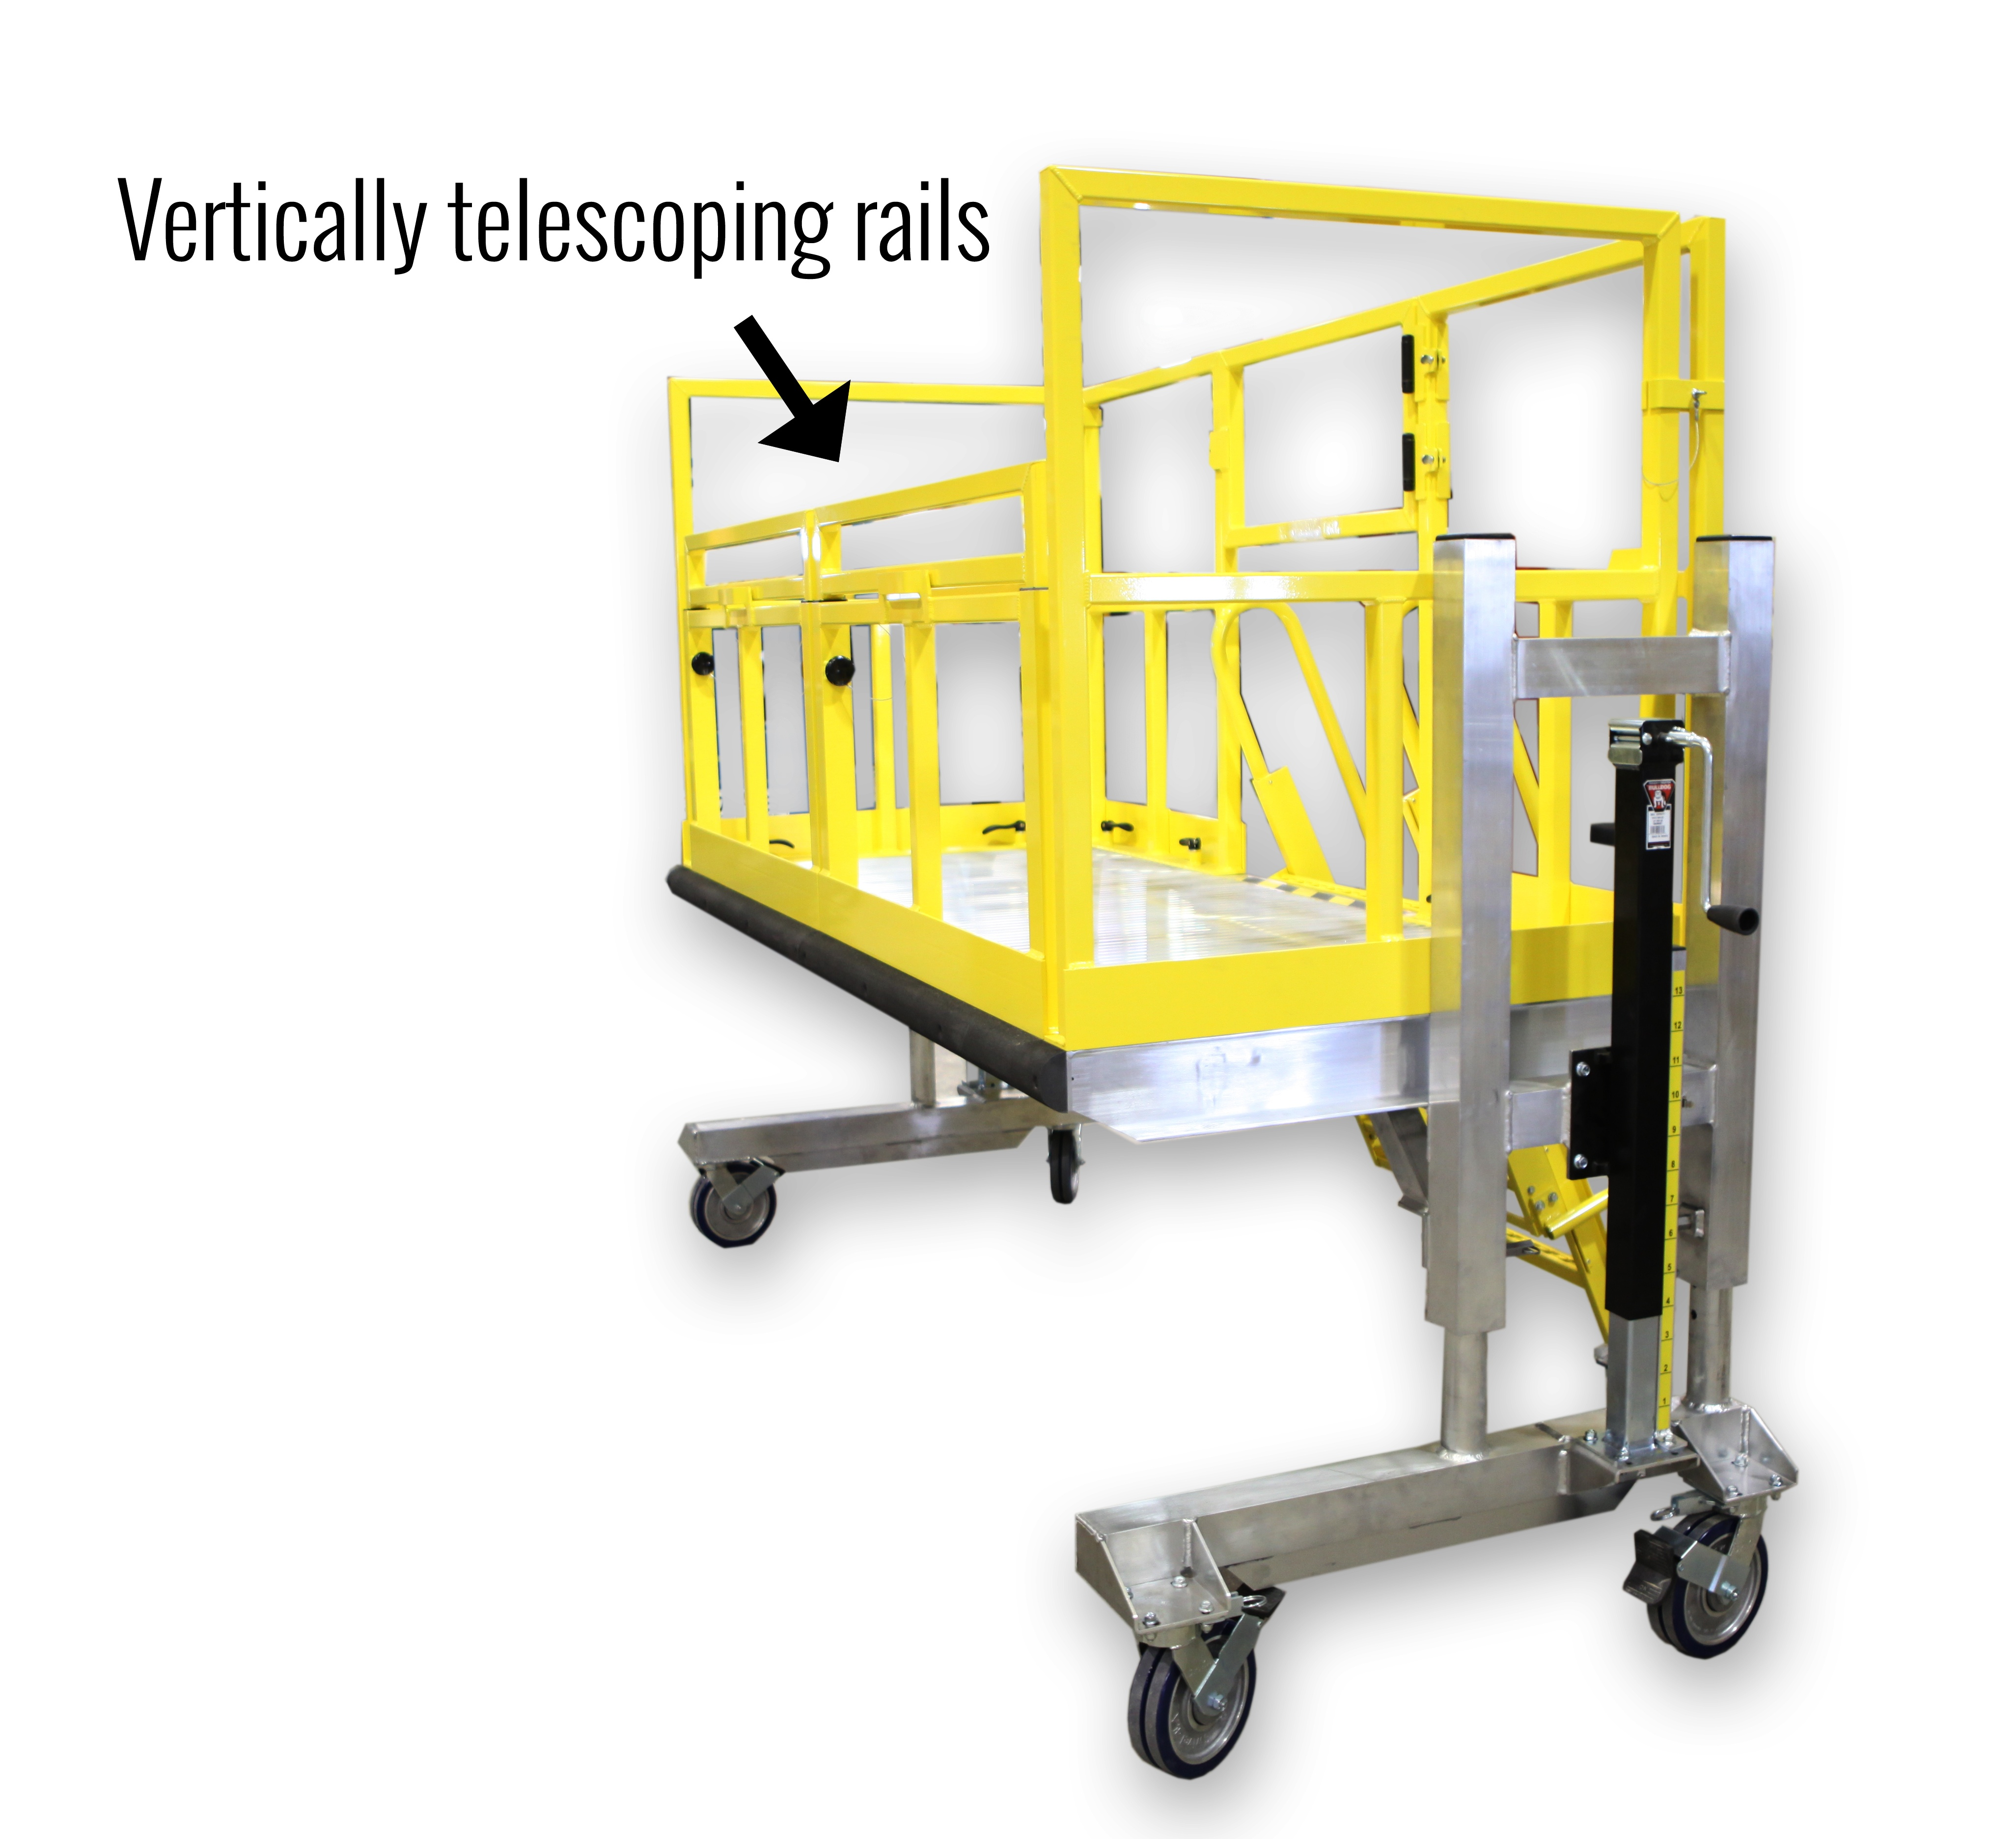 Telescopic rails for helicopter maintenance stand